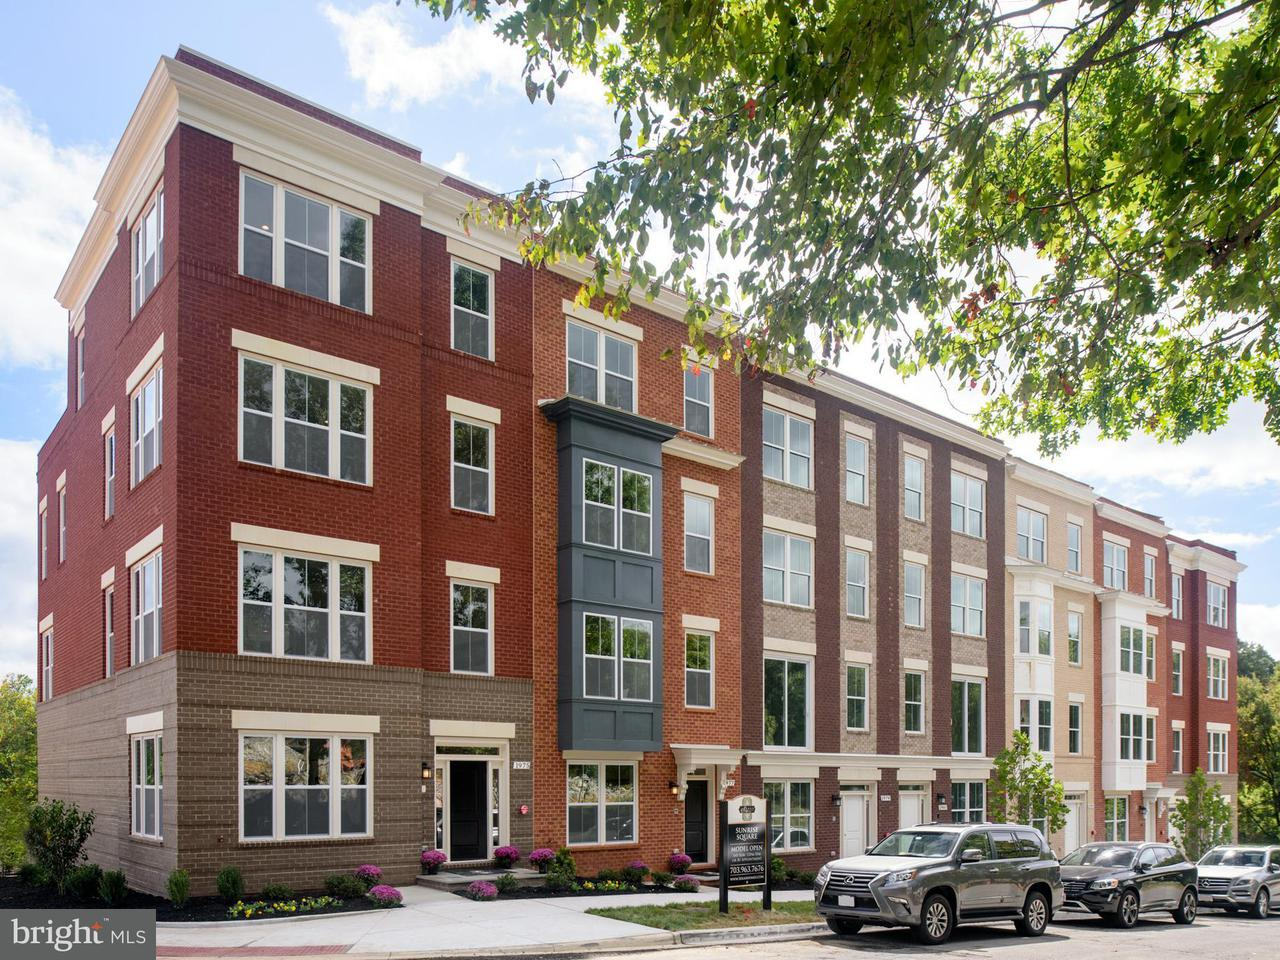 Townhouse for Sale at 11687 SUNRISE SQUARE Place 11687 SUNRISE SQUARE Place Reston, Virginia 20191 United States